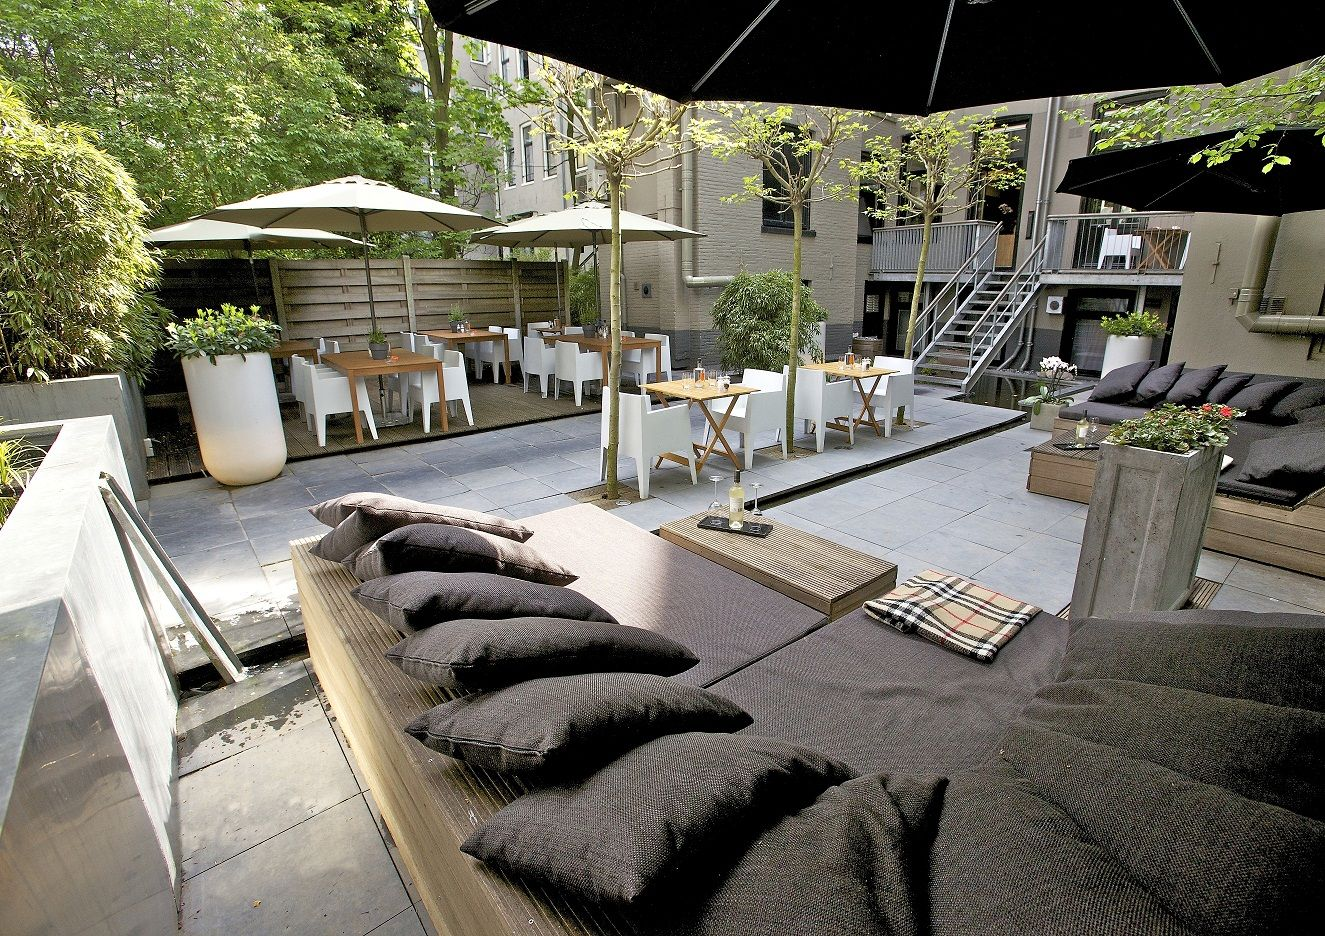 Contact hotel roemer through great small hotels an exclusive selection of boutique hotels and small luxury hotels all over the world